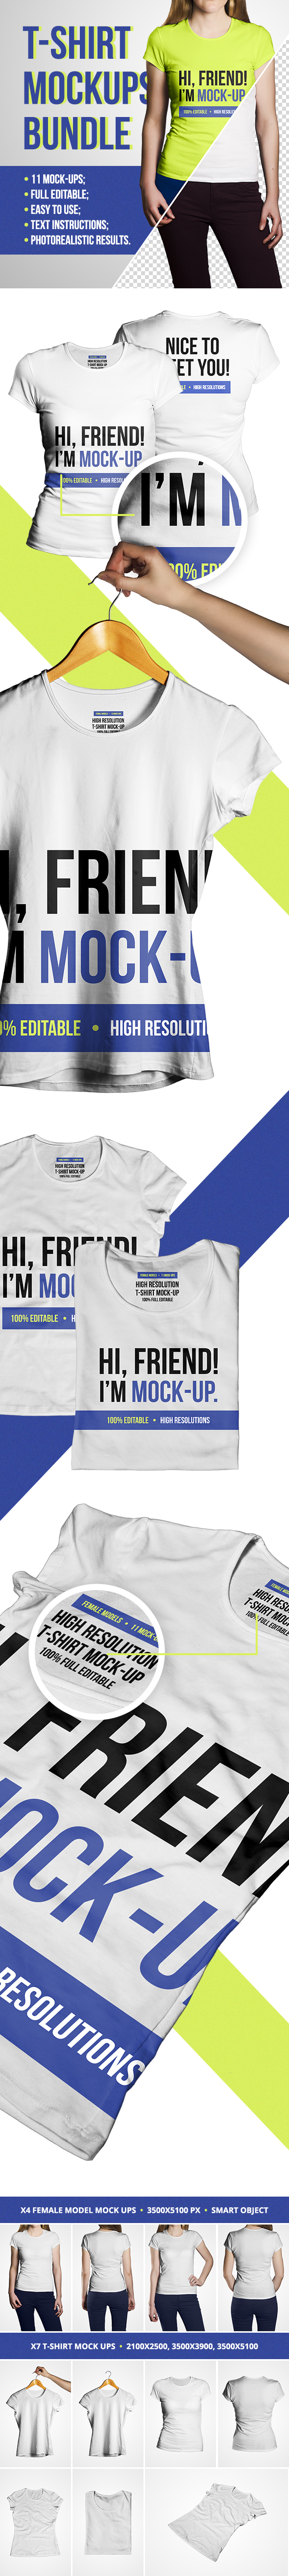 Download A Total Of 11 High Resolution Psd Mockup Files For A Professional Presentation These Mock Ups Help You Sell Your Shirt Mockup T Shirts For Women Tshirt Mockup